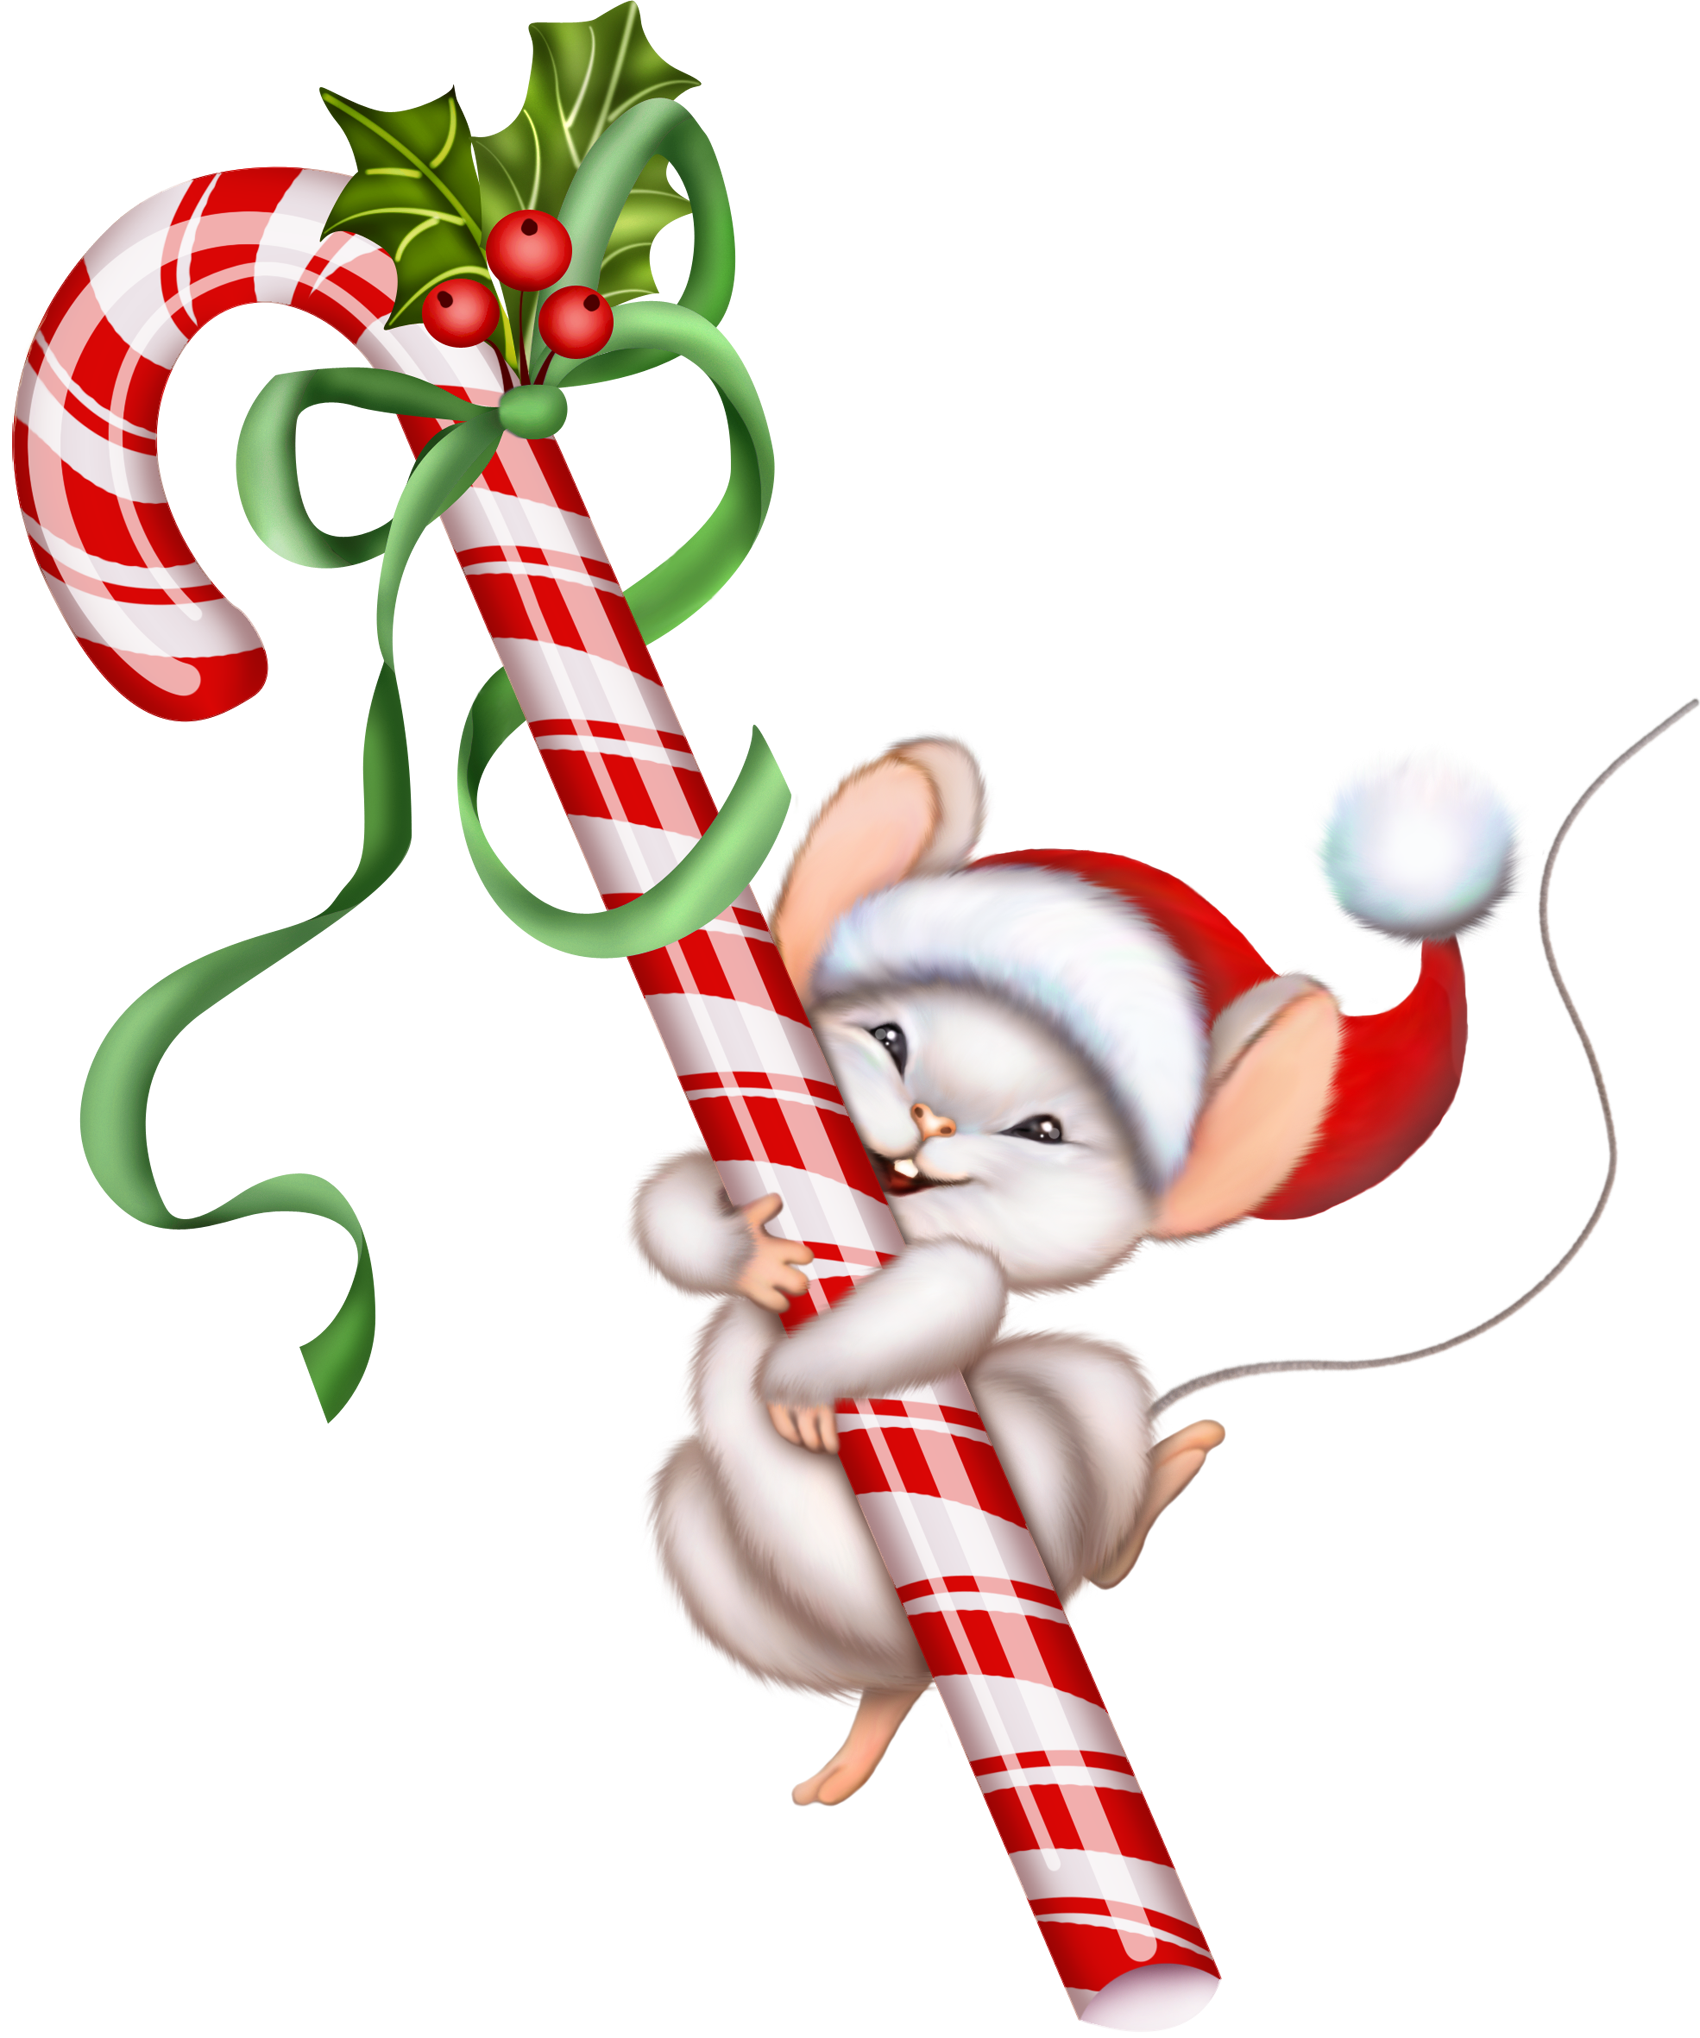 Free candy canes clip art image candy cane coloring page.